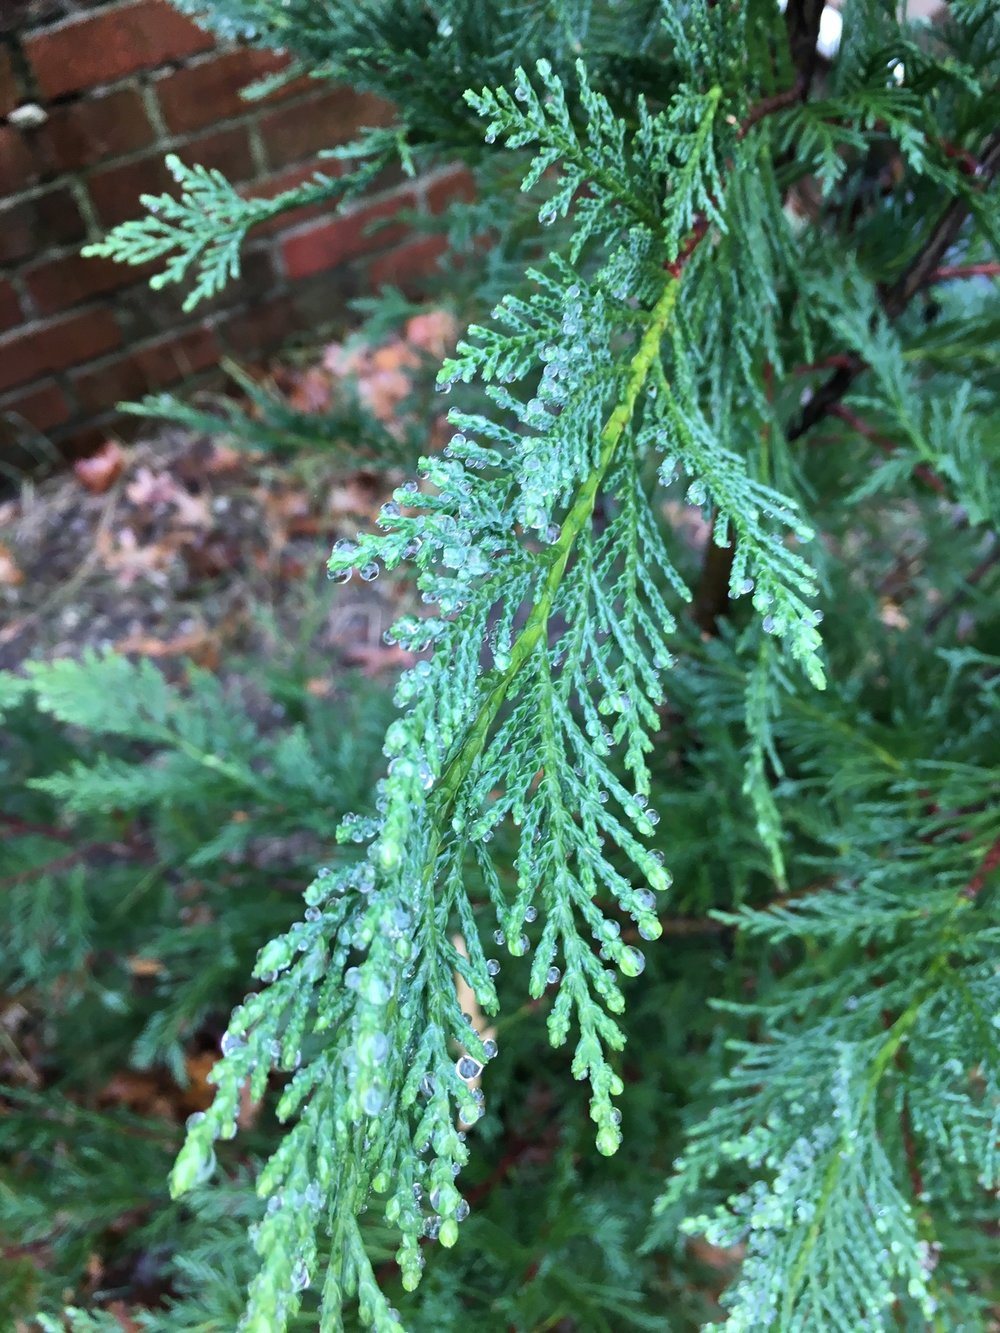 The pines are happy in the yard.